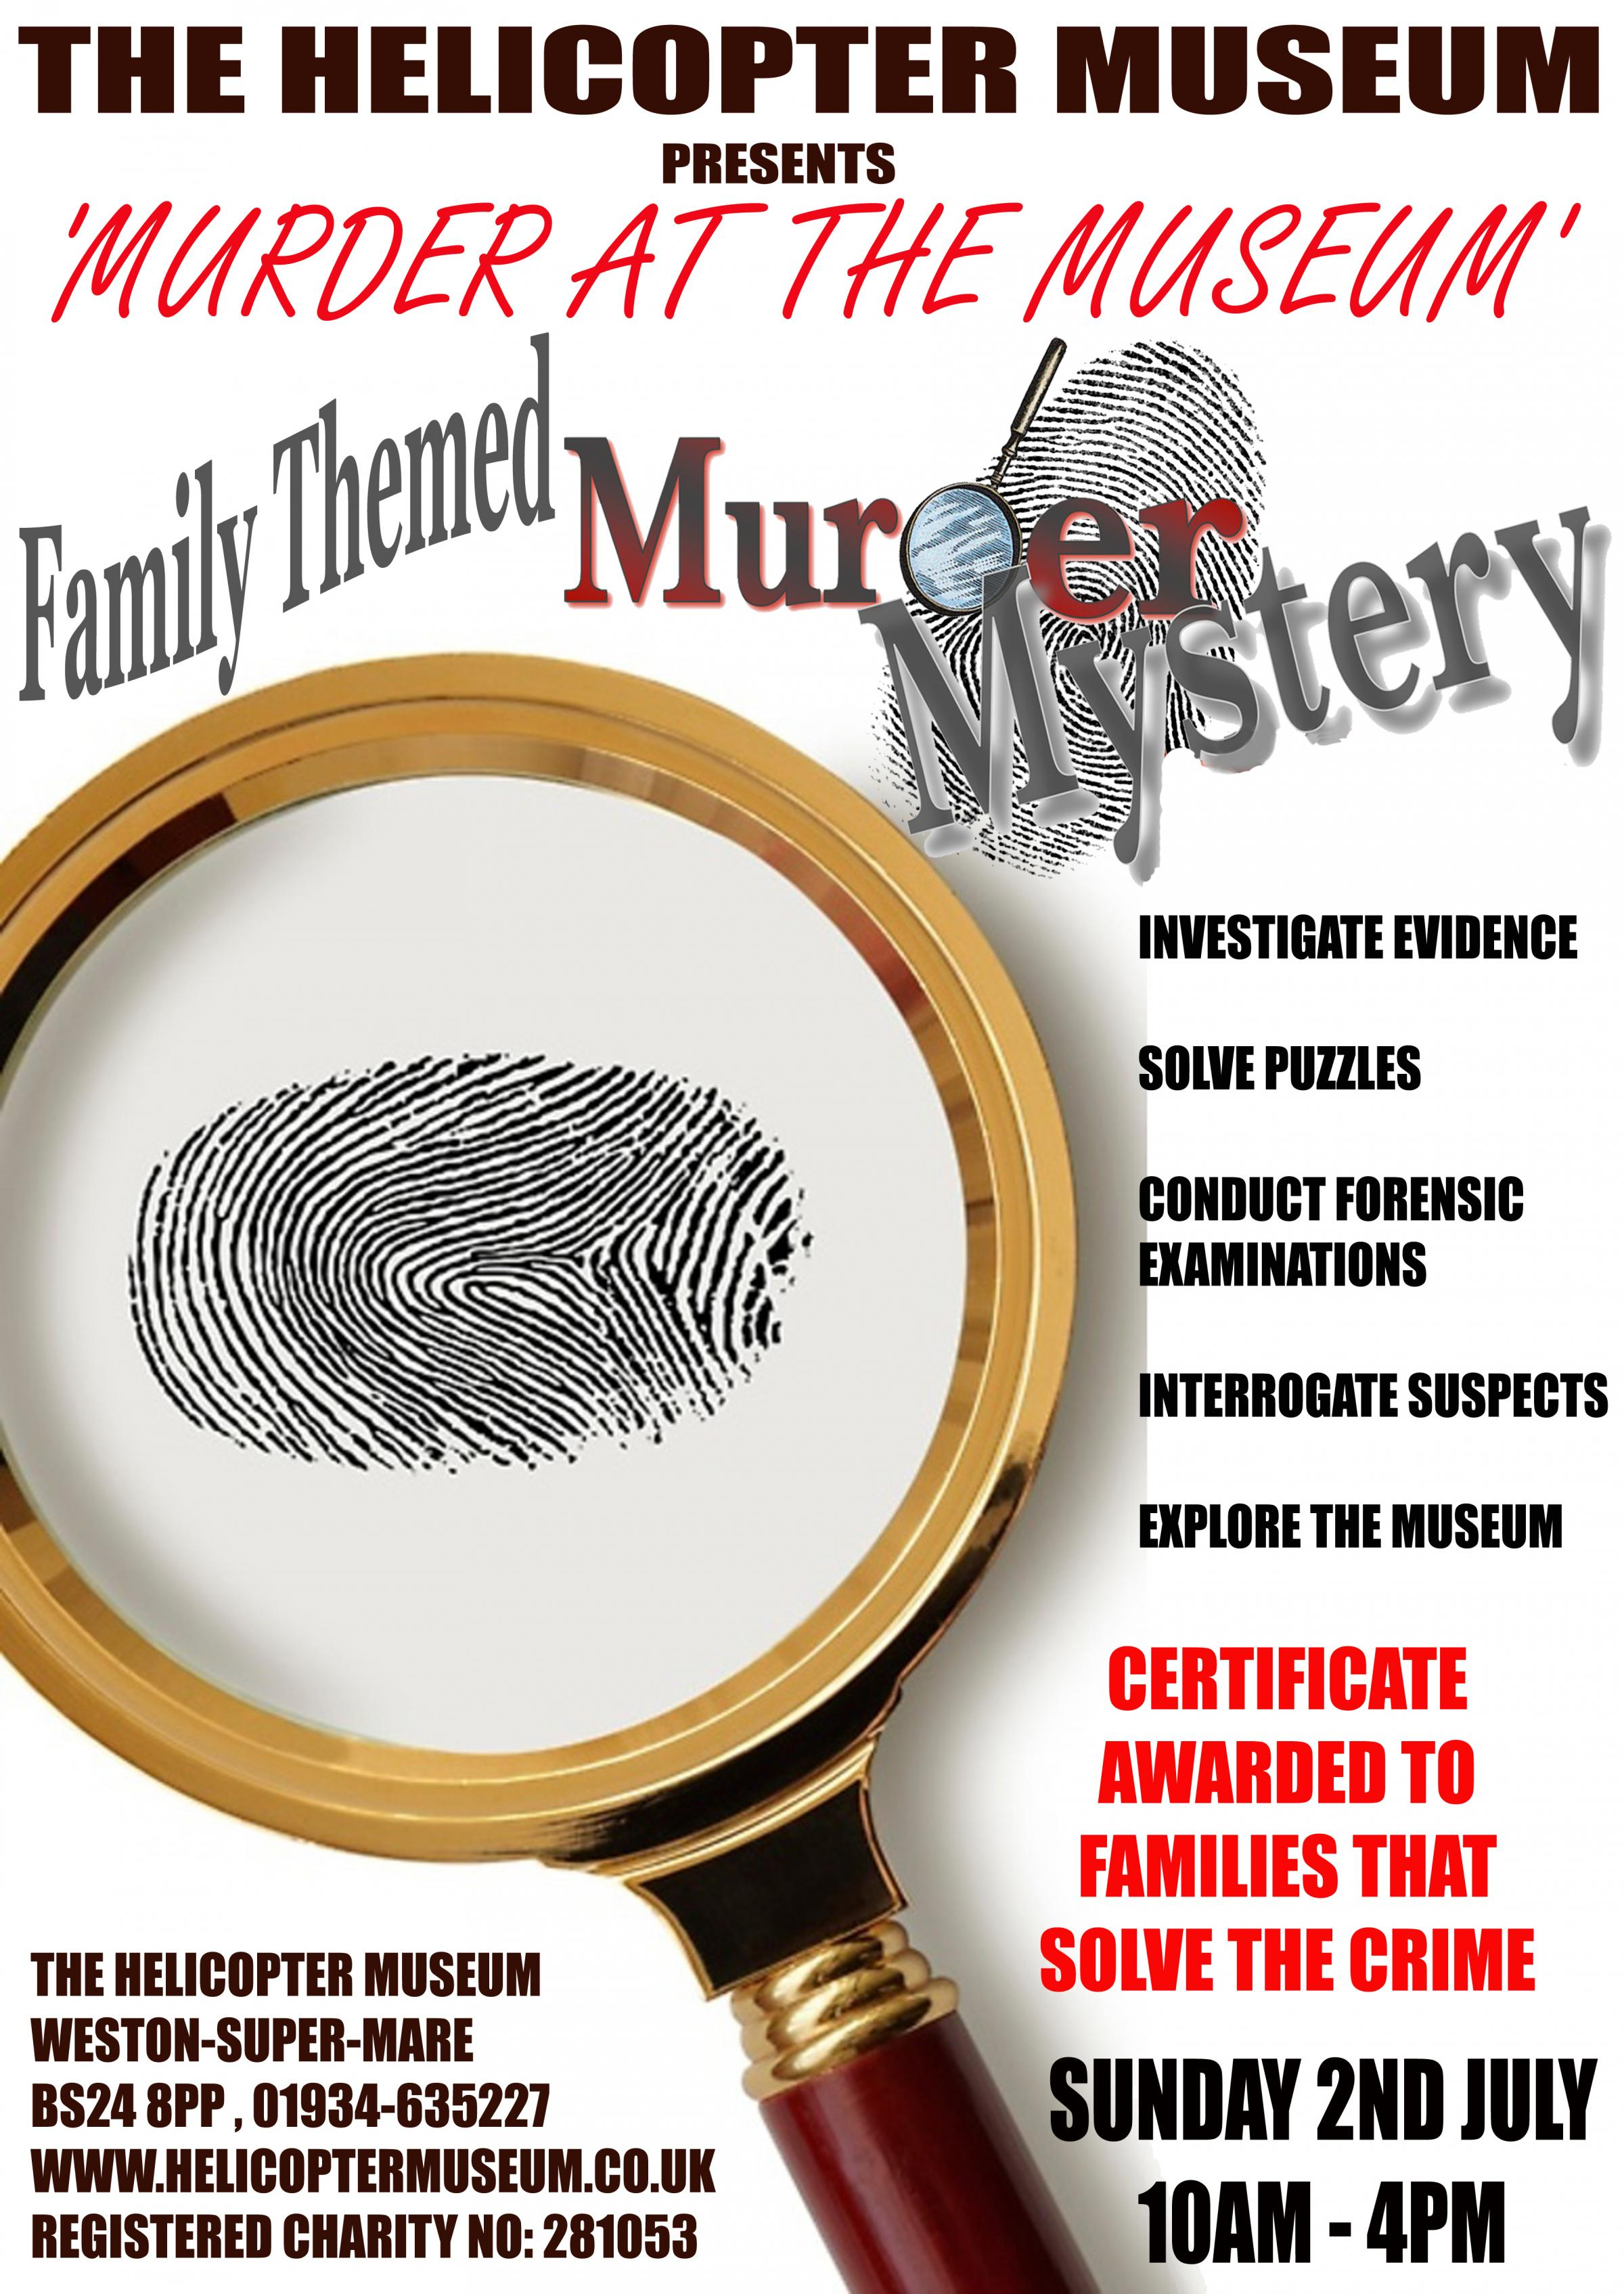 'Murder at the Museum' A Family Themed Mystery